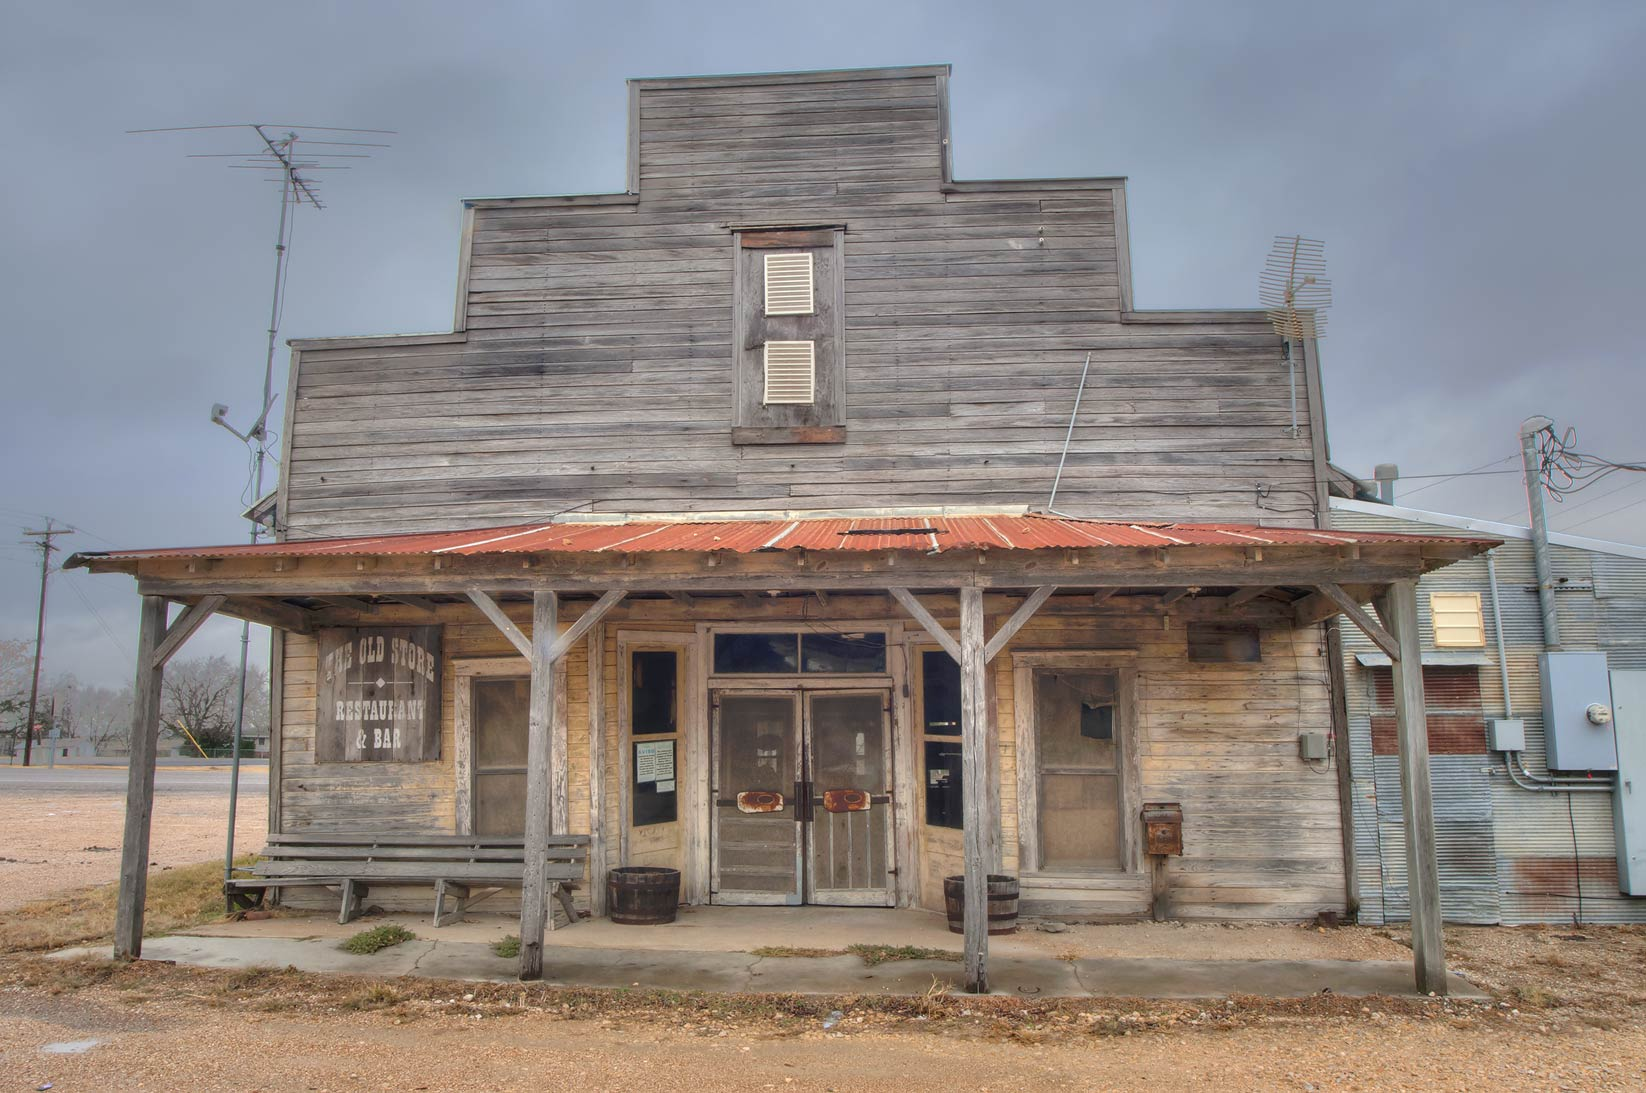 Restaurant at Rd. 320 in Westphalia. Texas